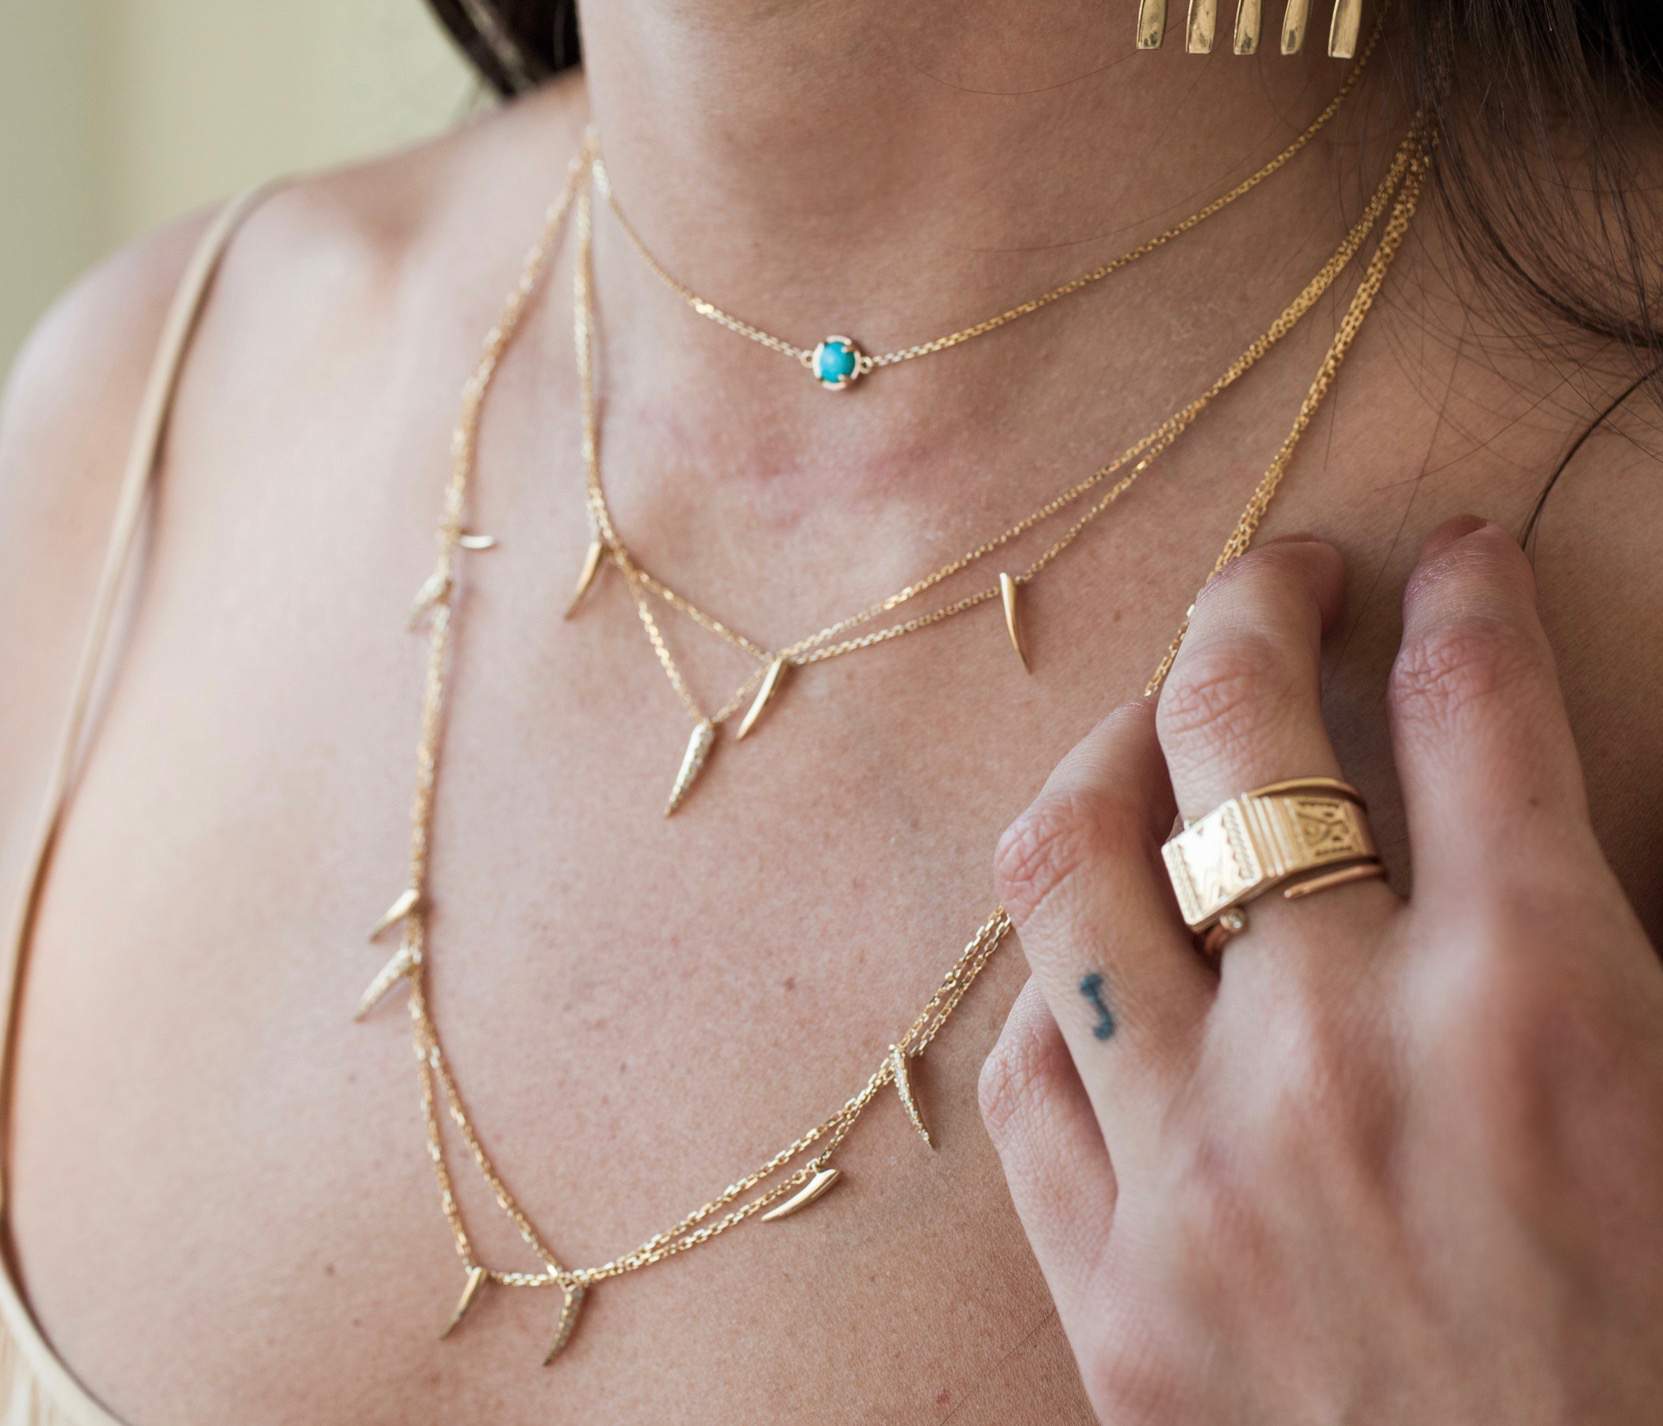 Necklaces and rings 2.jpeg